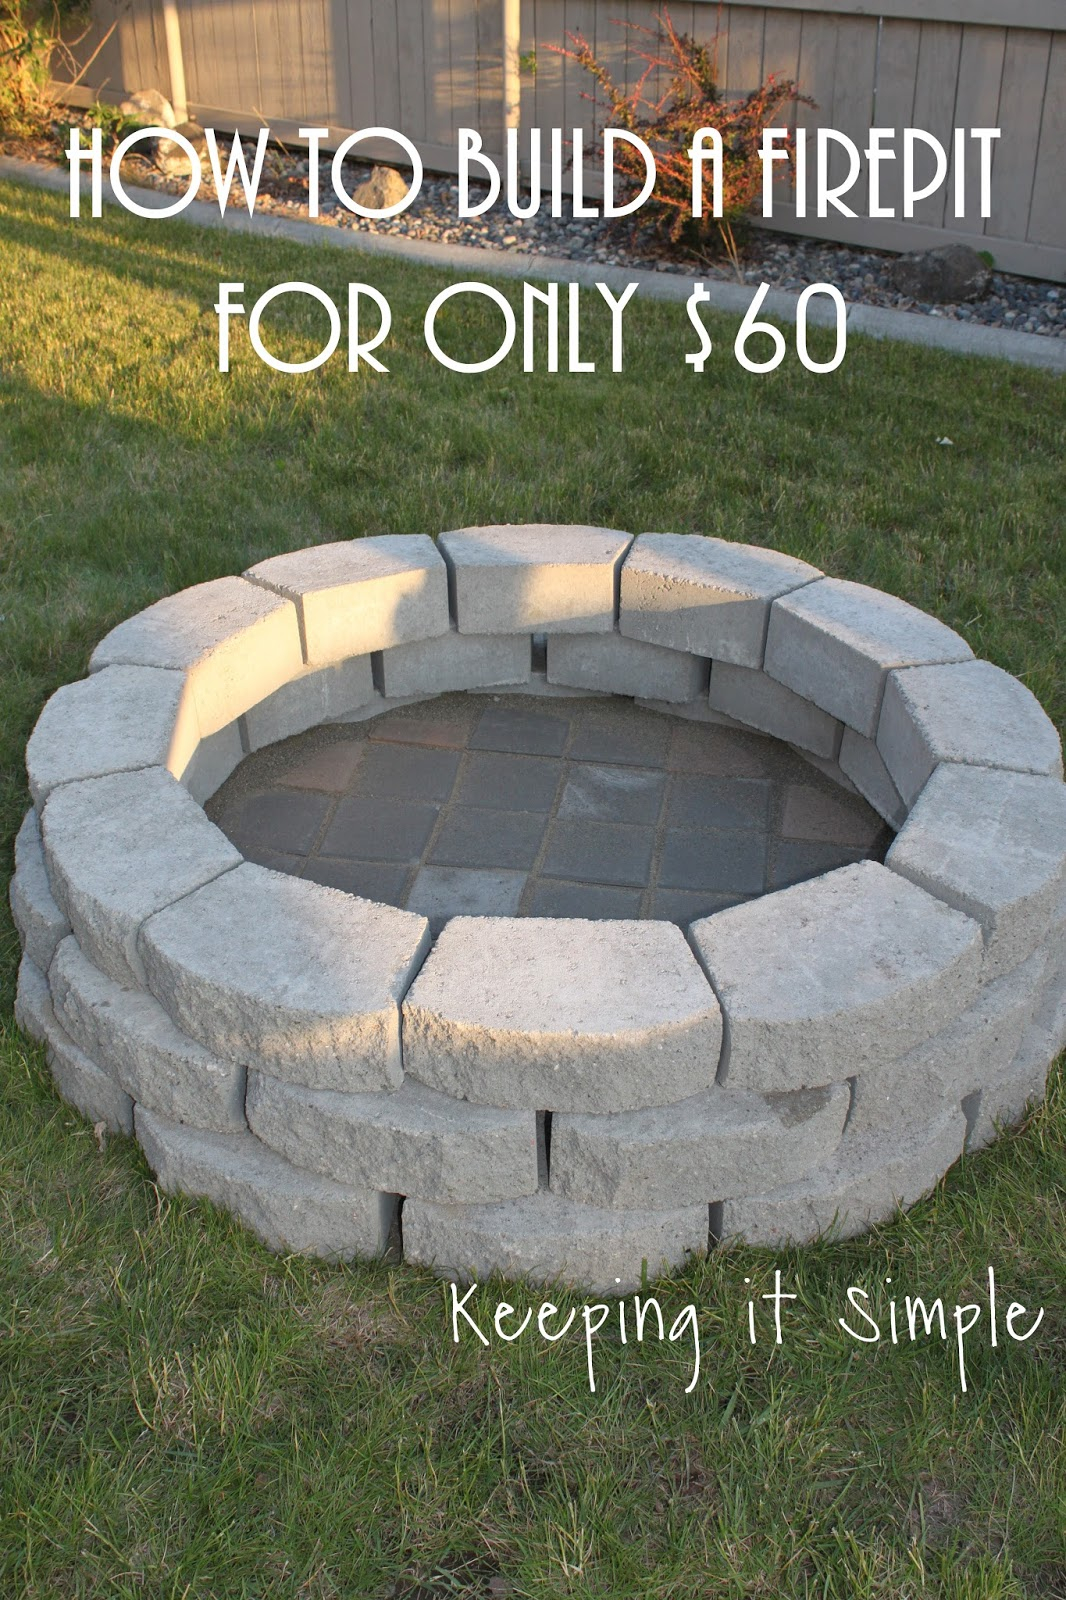 How To Build A Diy Fire Pit For Only 60 Keeping It Simple with Cheap Backyard Fire Pit Ideas